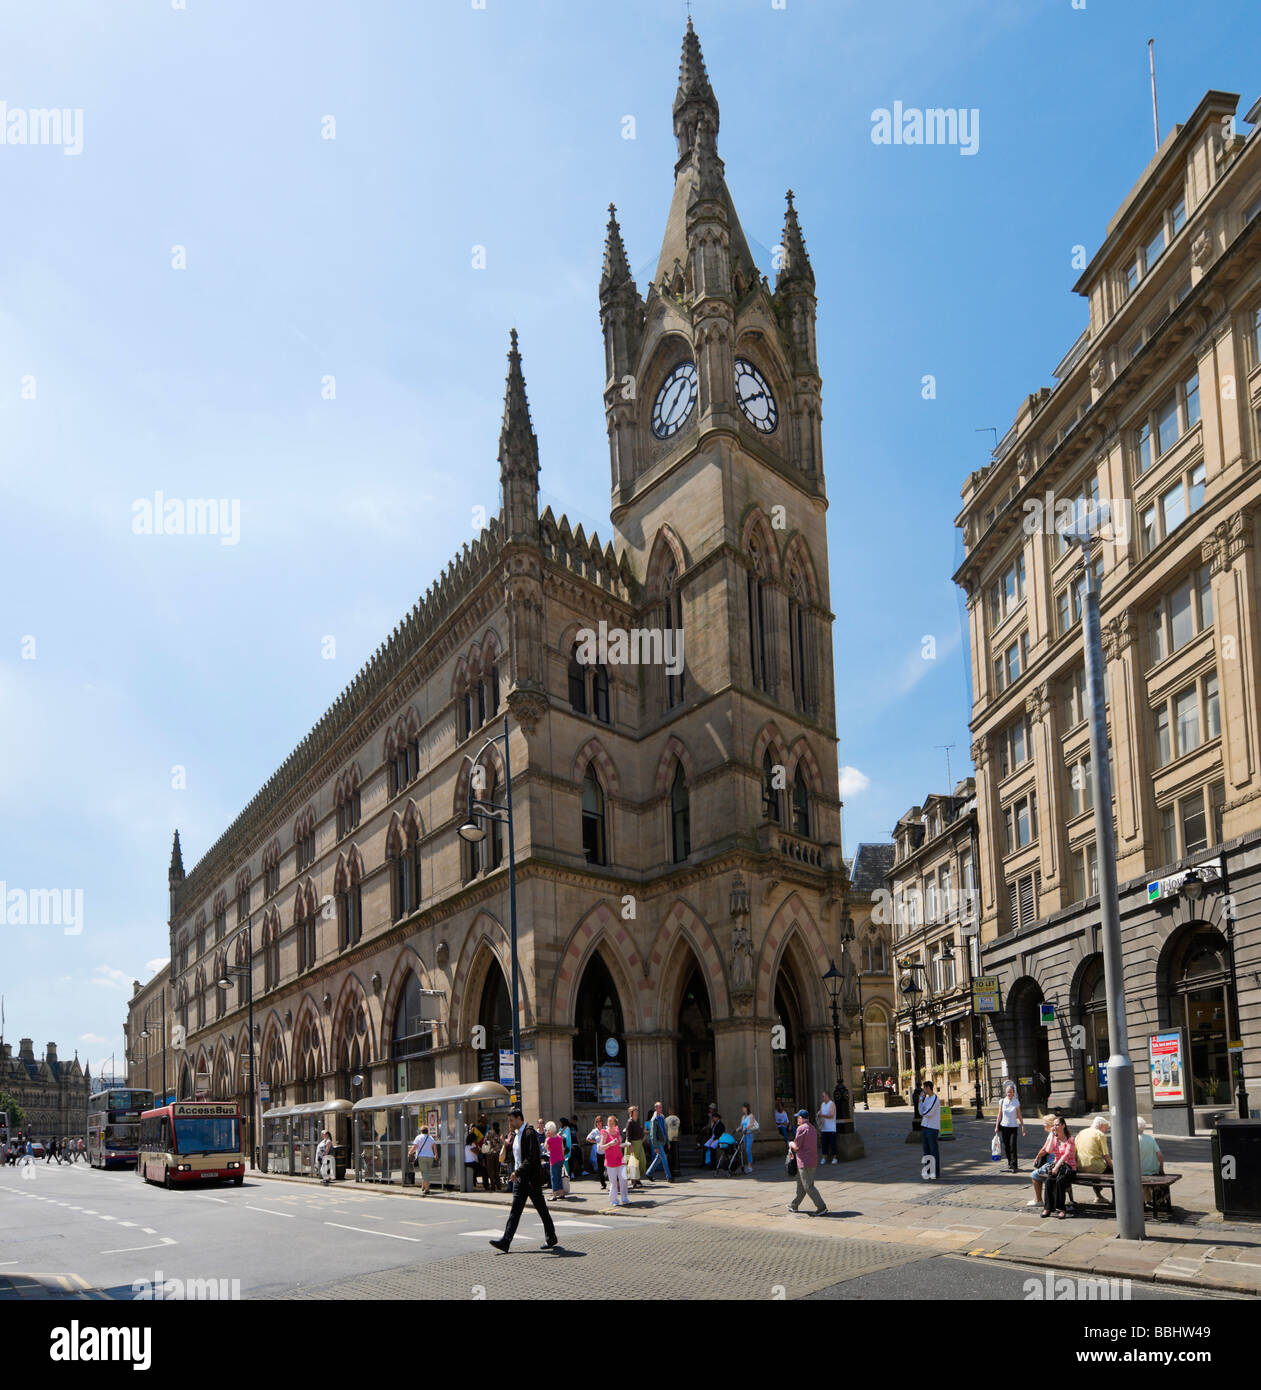 The Wool Exchange Building viewed from Market Street, Bradford, West Yorkshire, England - Stock Image